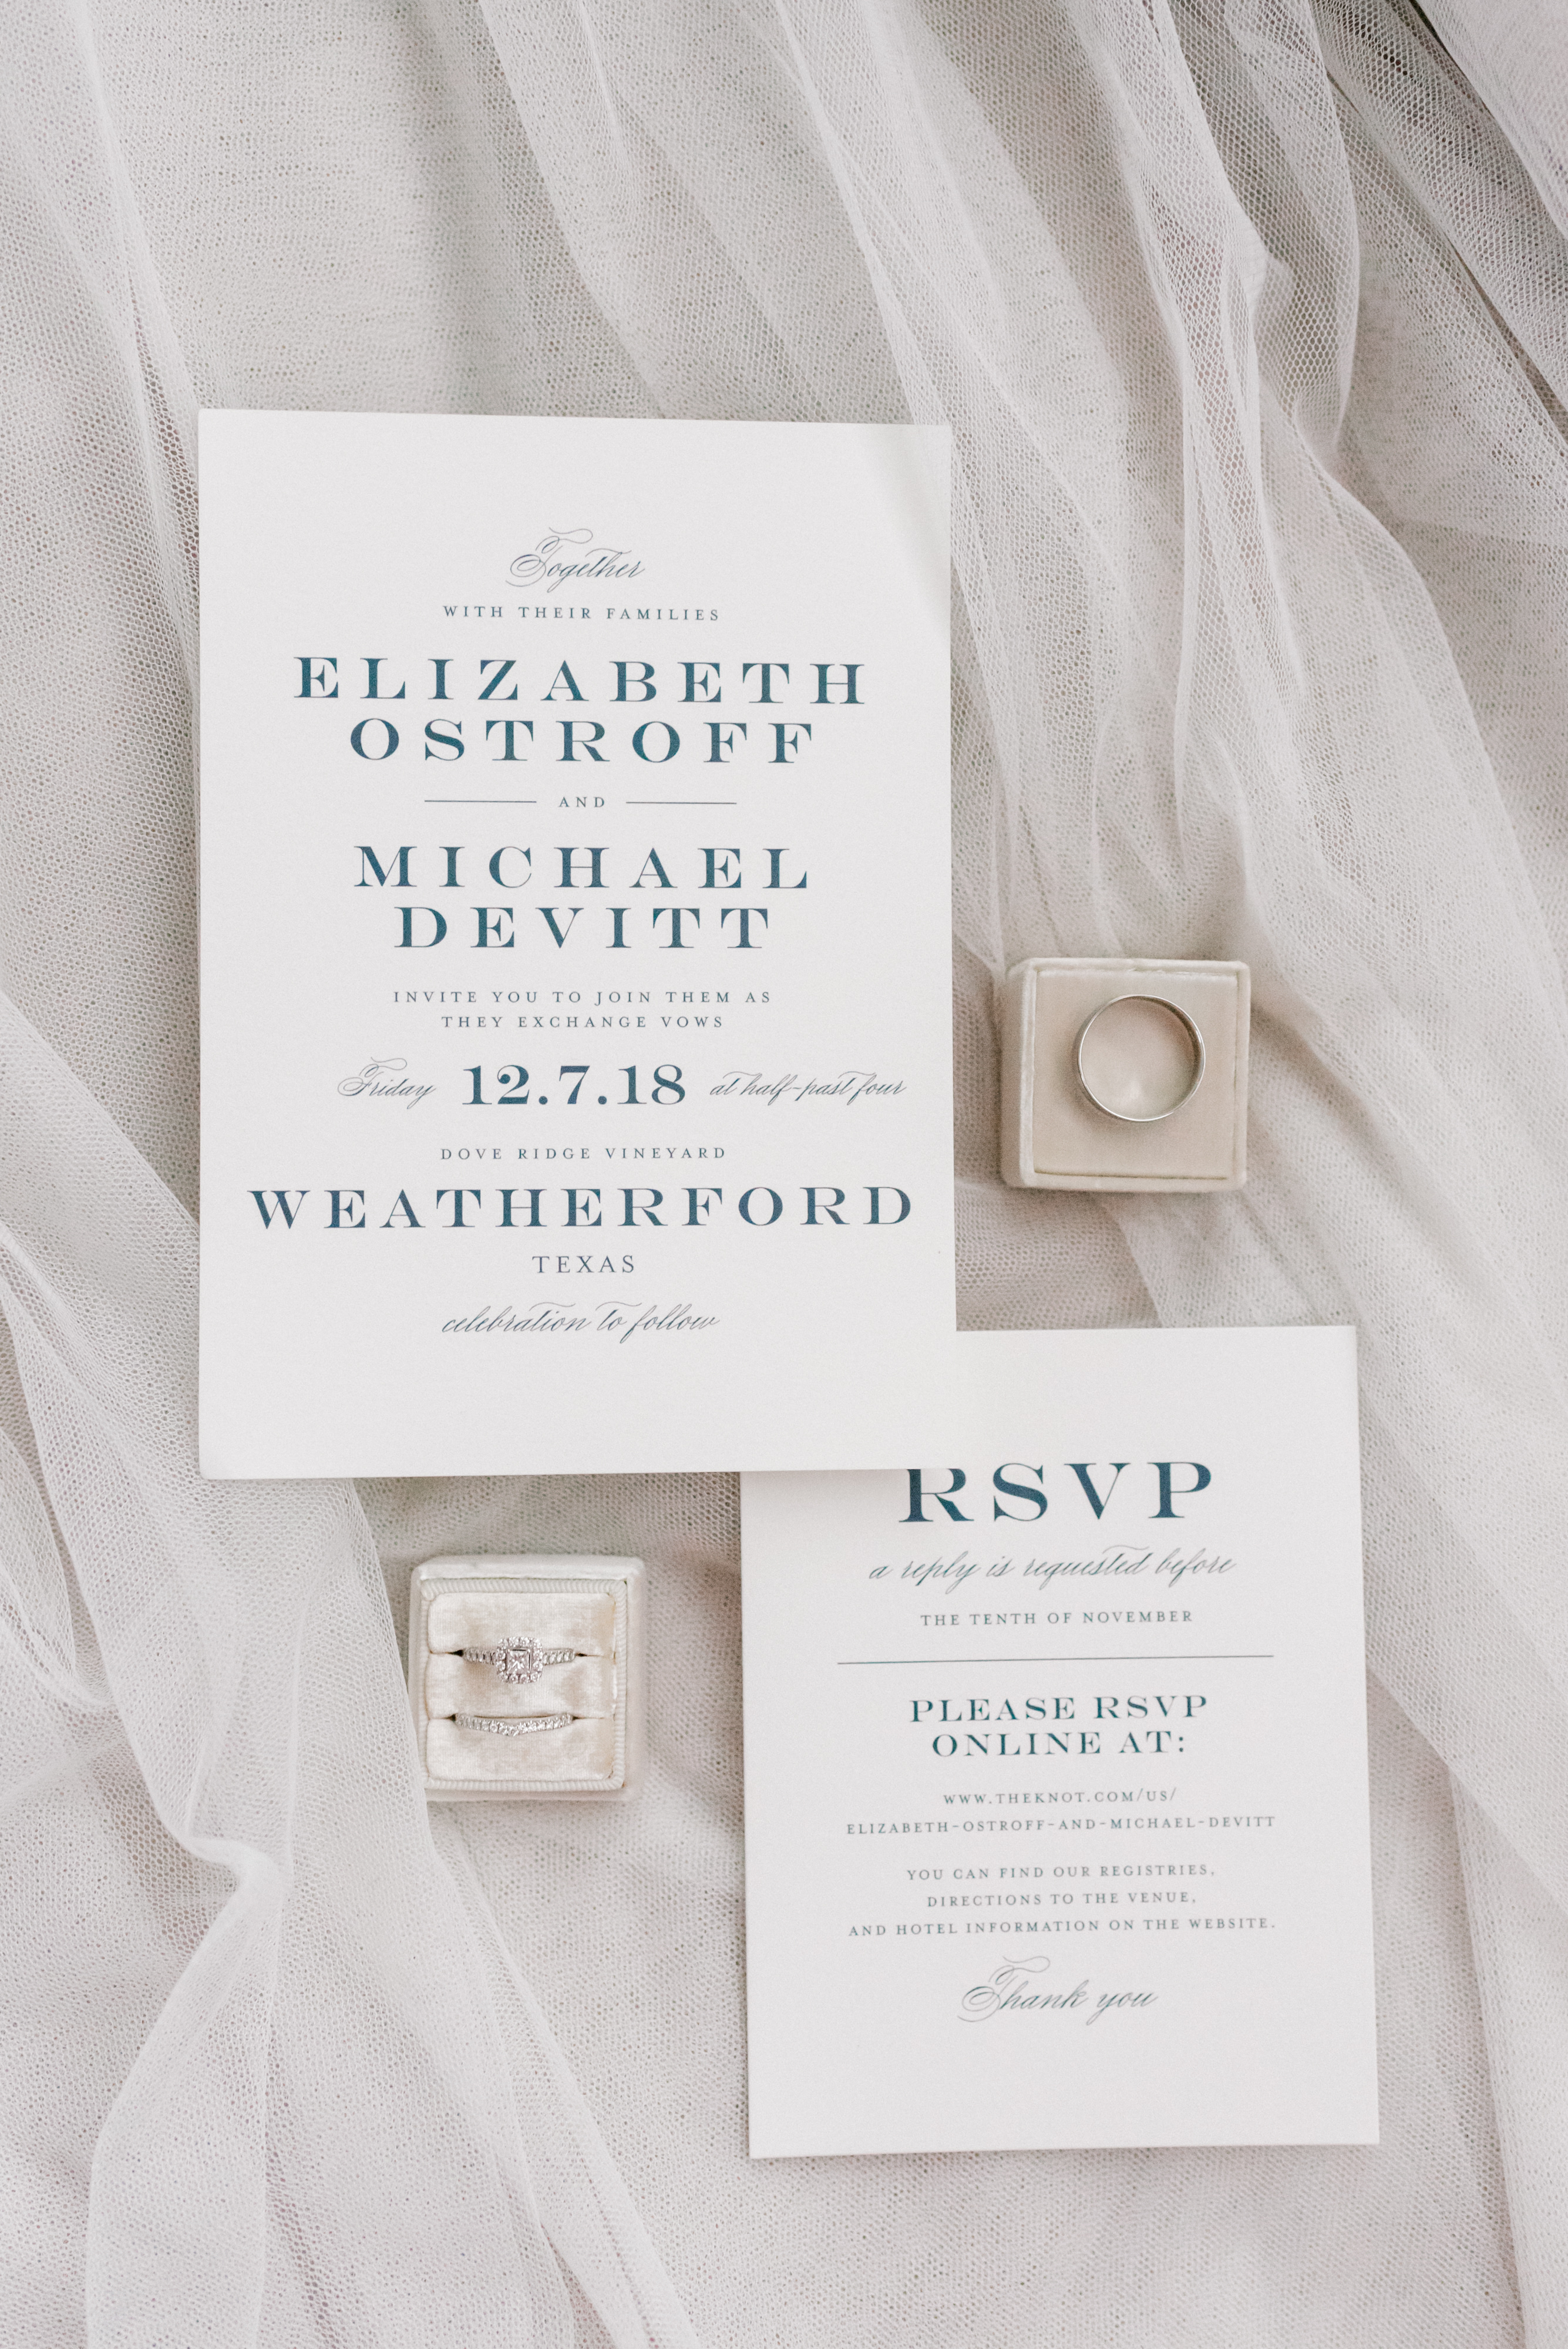 Mauve and Navy wedding at Dove Ridge Vineyard - Weatherford,Texas Wedding | Alexa Kay Events | Fort Worth Wedding Planner